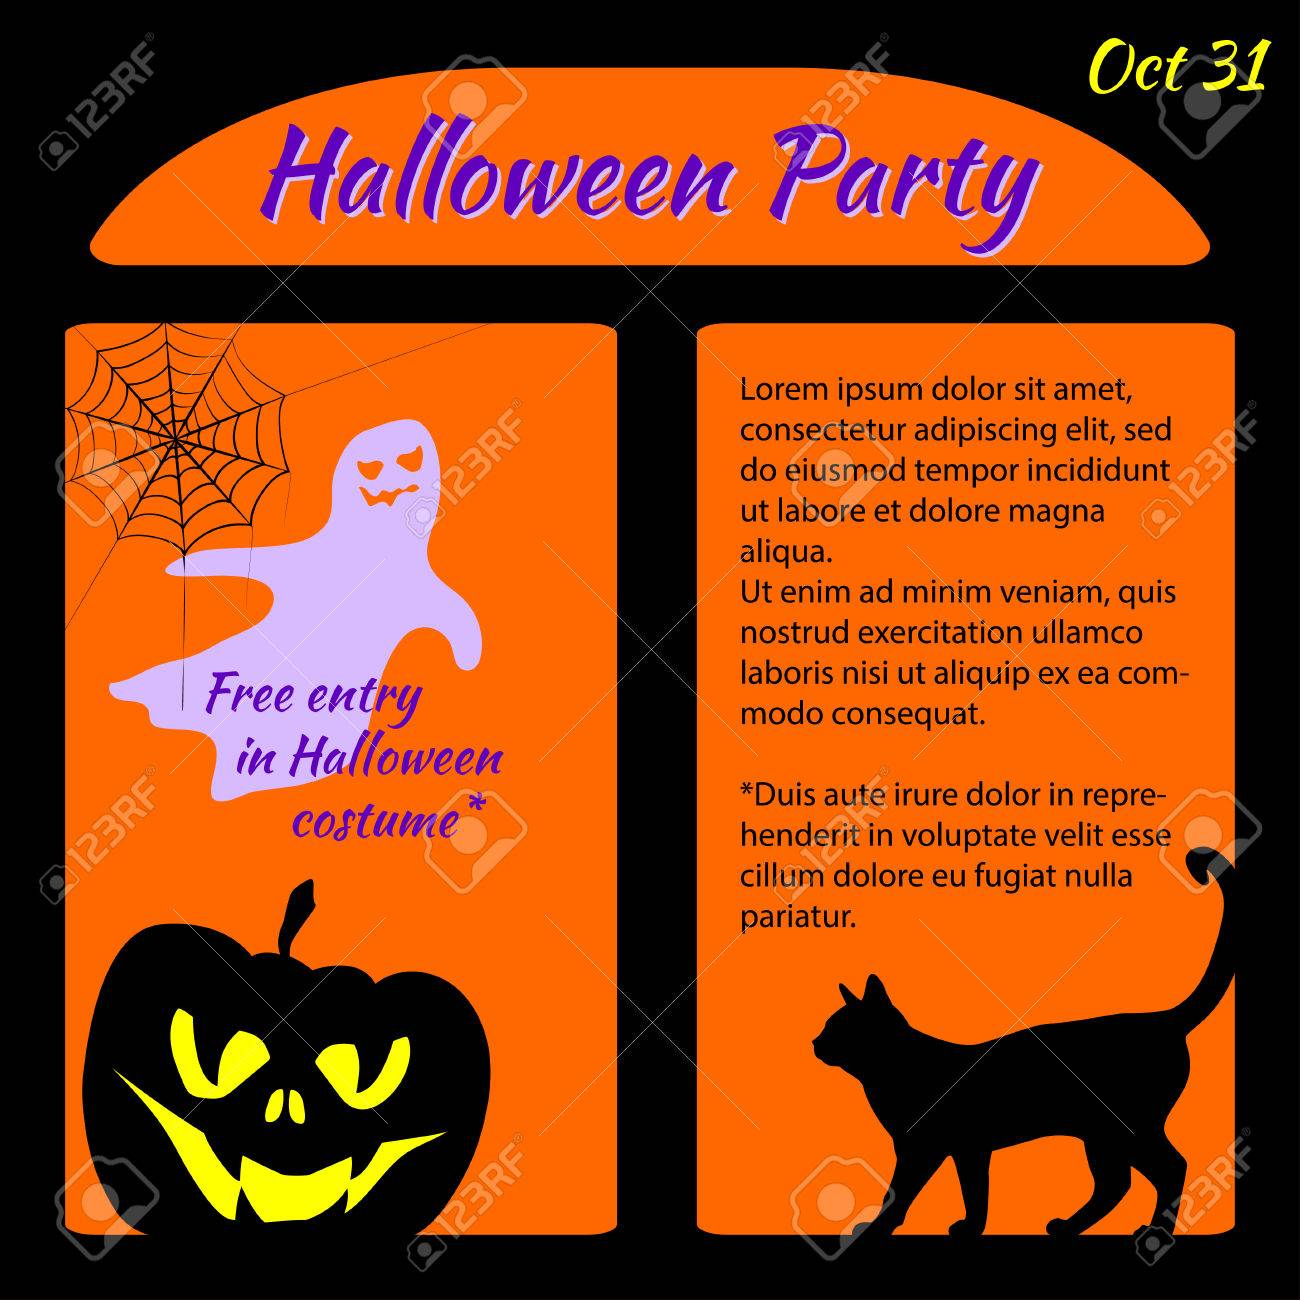 Halloween Party Template With Pumpkin, Cat, Ghost And Spider ...